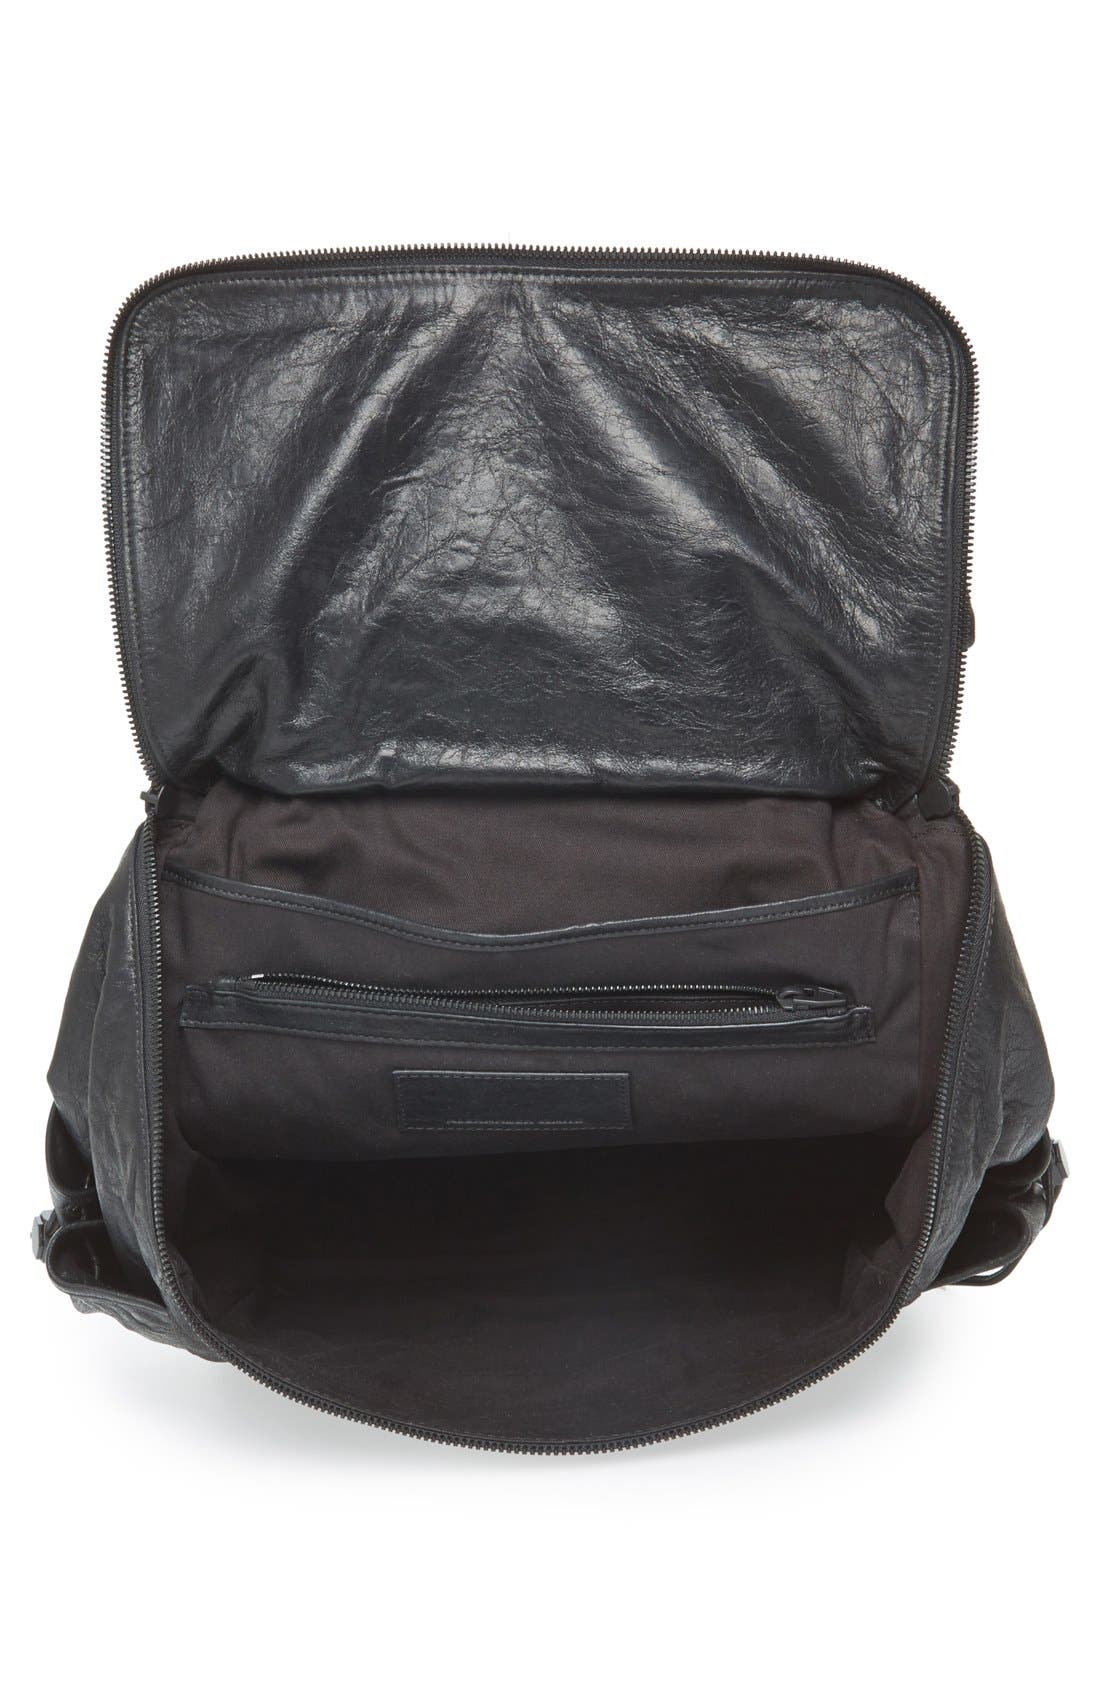 'Wallie' Leather Backpack,                             Alternate thumbnail 2, color,                             001